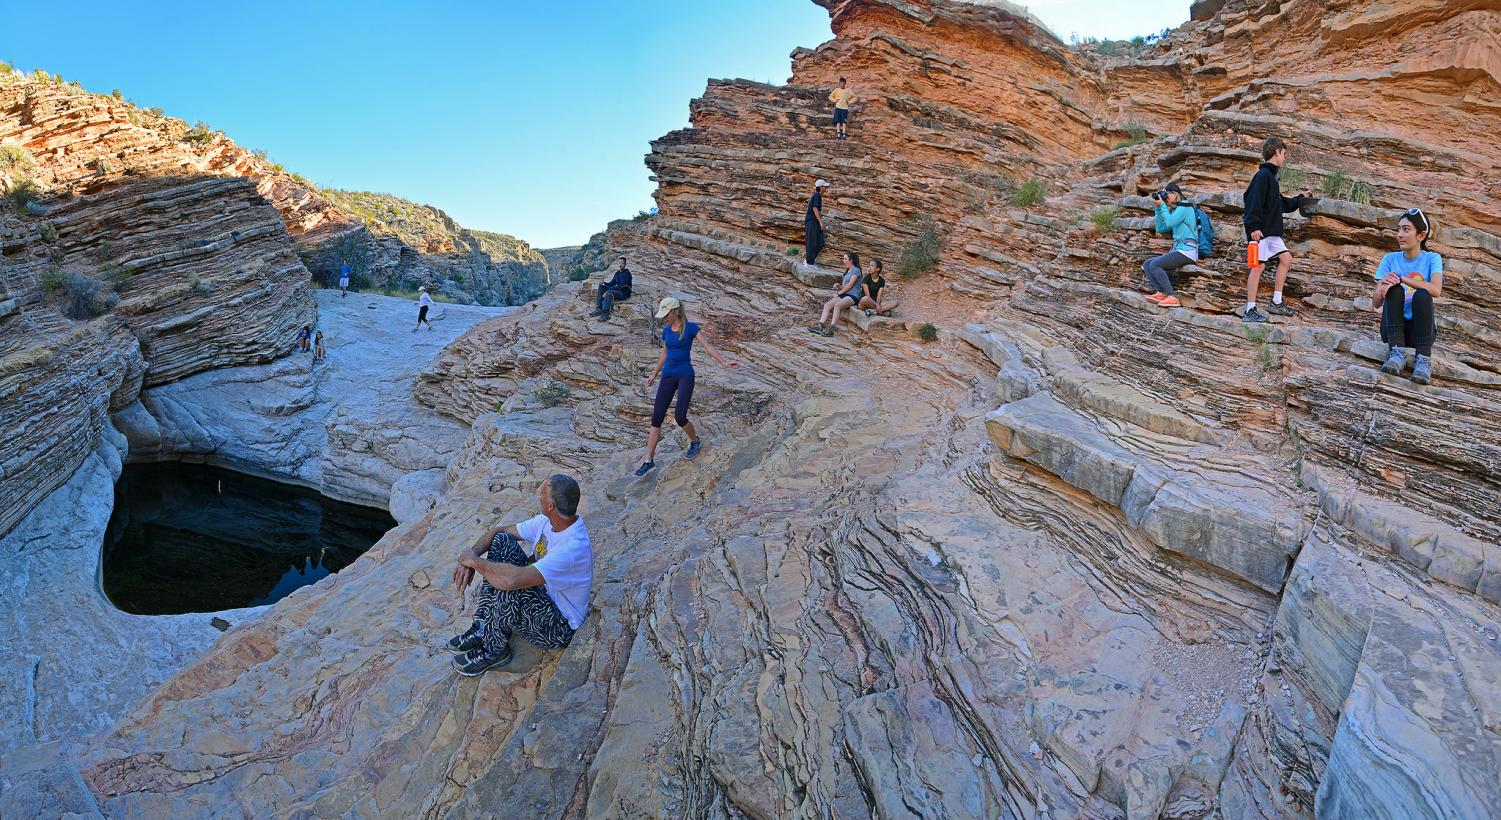 Last year's eighth graders enjoy the view on one of their hikes. Because the 35-day-long government shutdown has ended, the Class of 2023's Big Bend trip will take place.